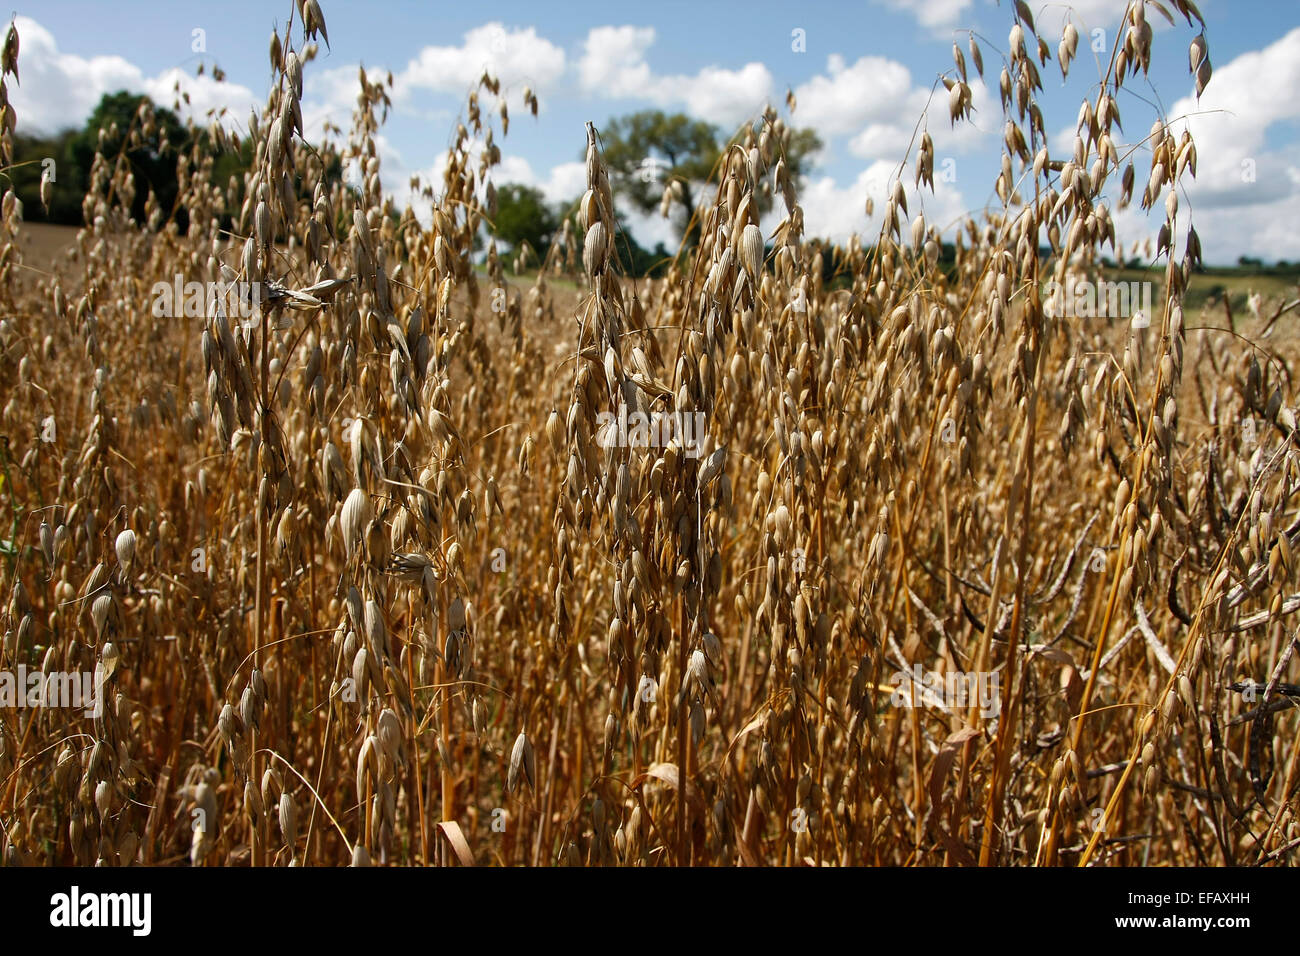 A field with ripe ears of oats. The oats are usually harvested by combine harvesters. Oats are highly valued of - Stock Image